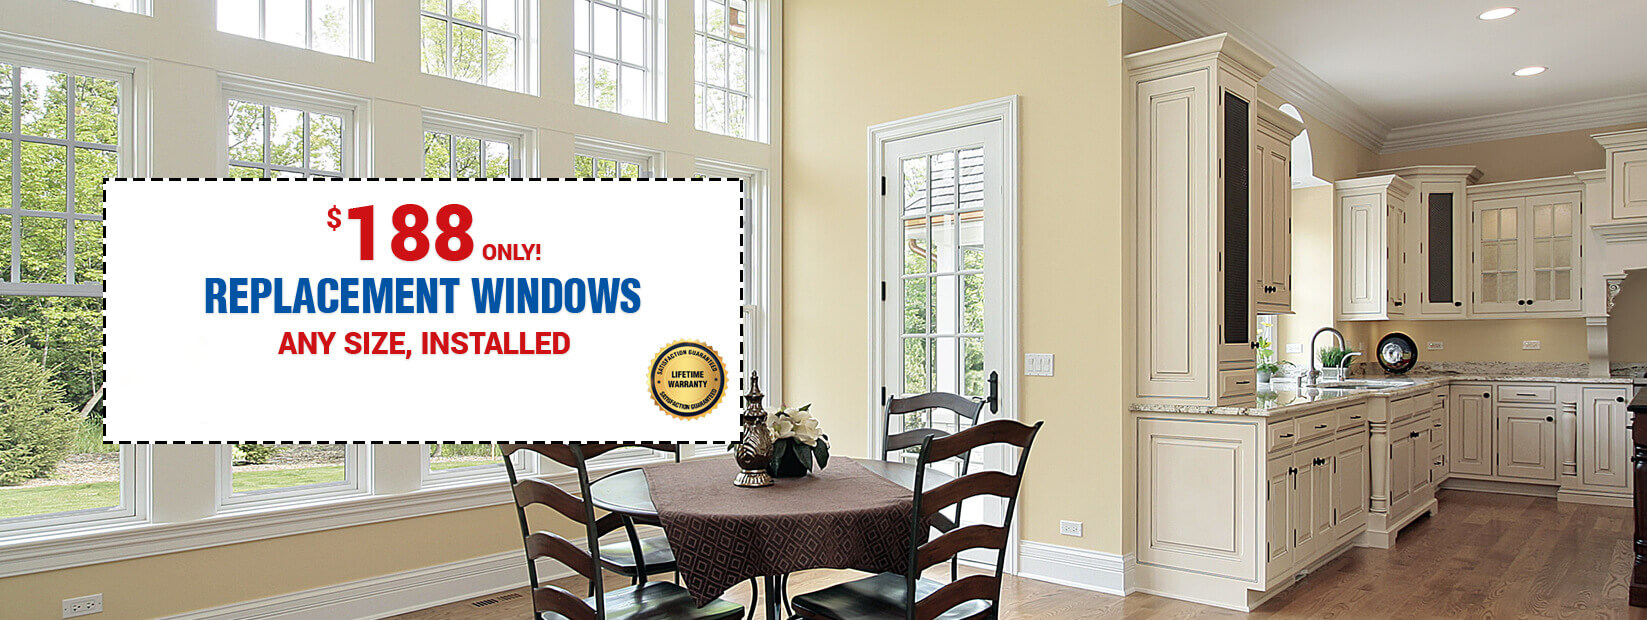 Replacement Windows Price, Hudson Valley NY